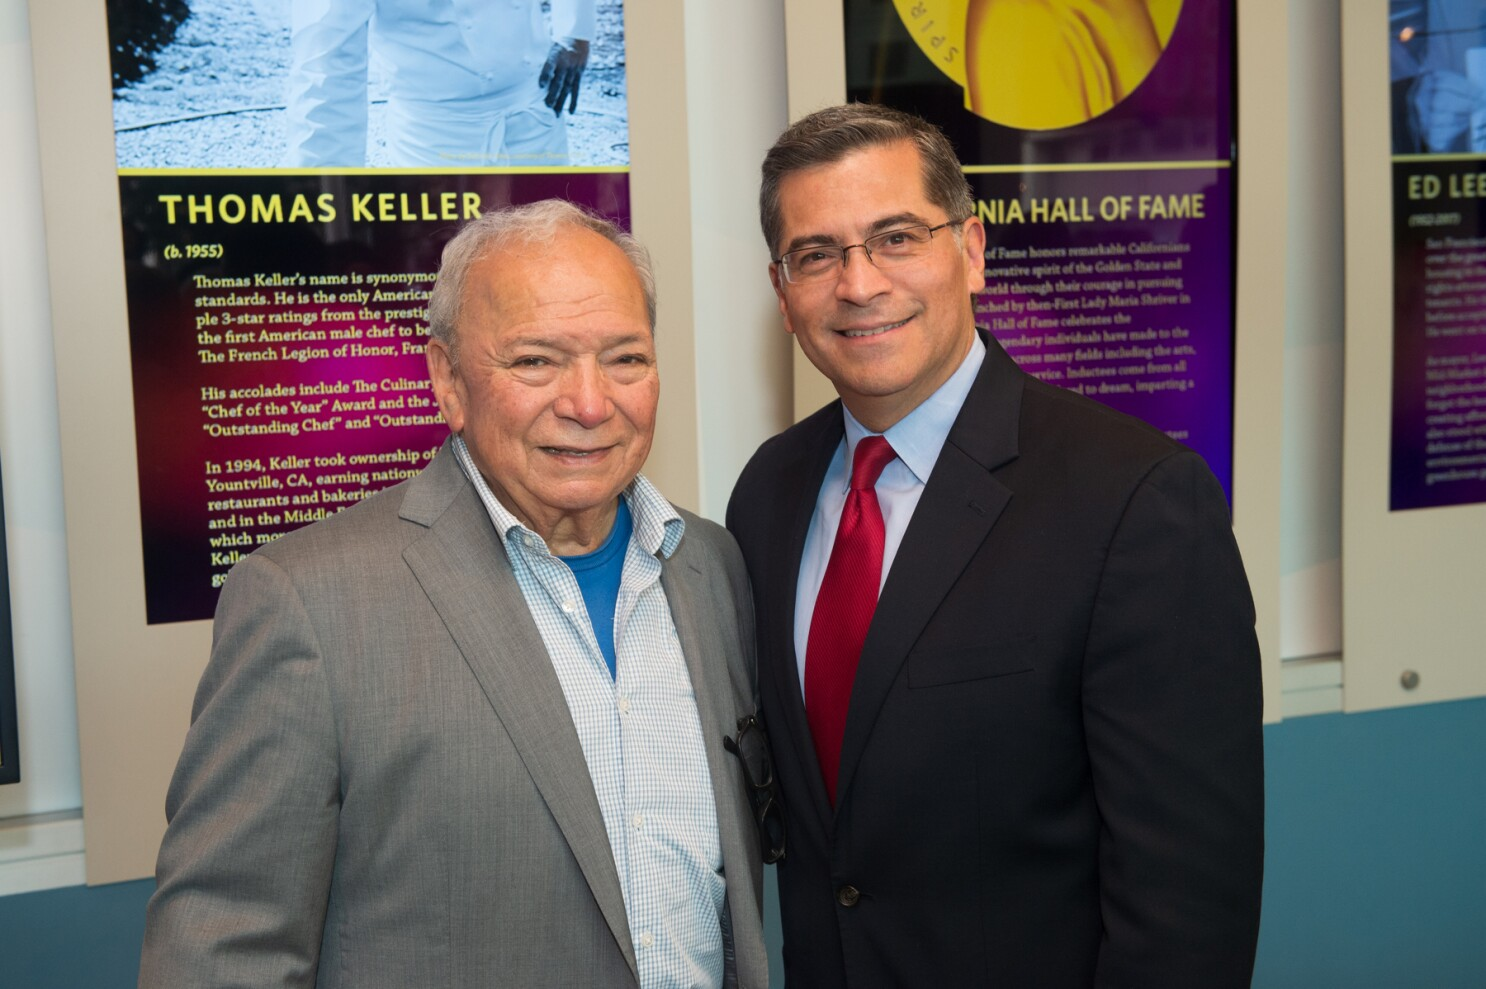 Henry Lozano, who engineered the political careers of emerging Latino leaders, dies